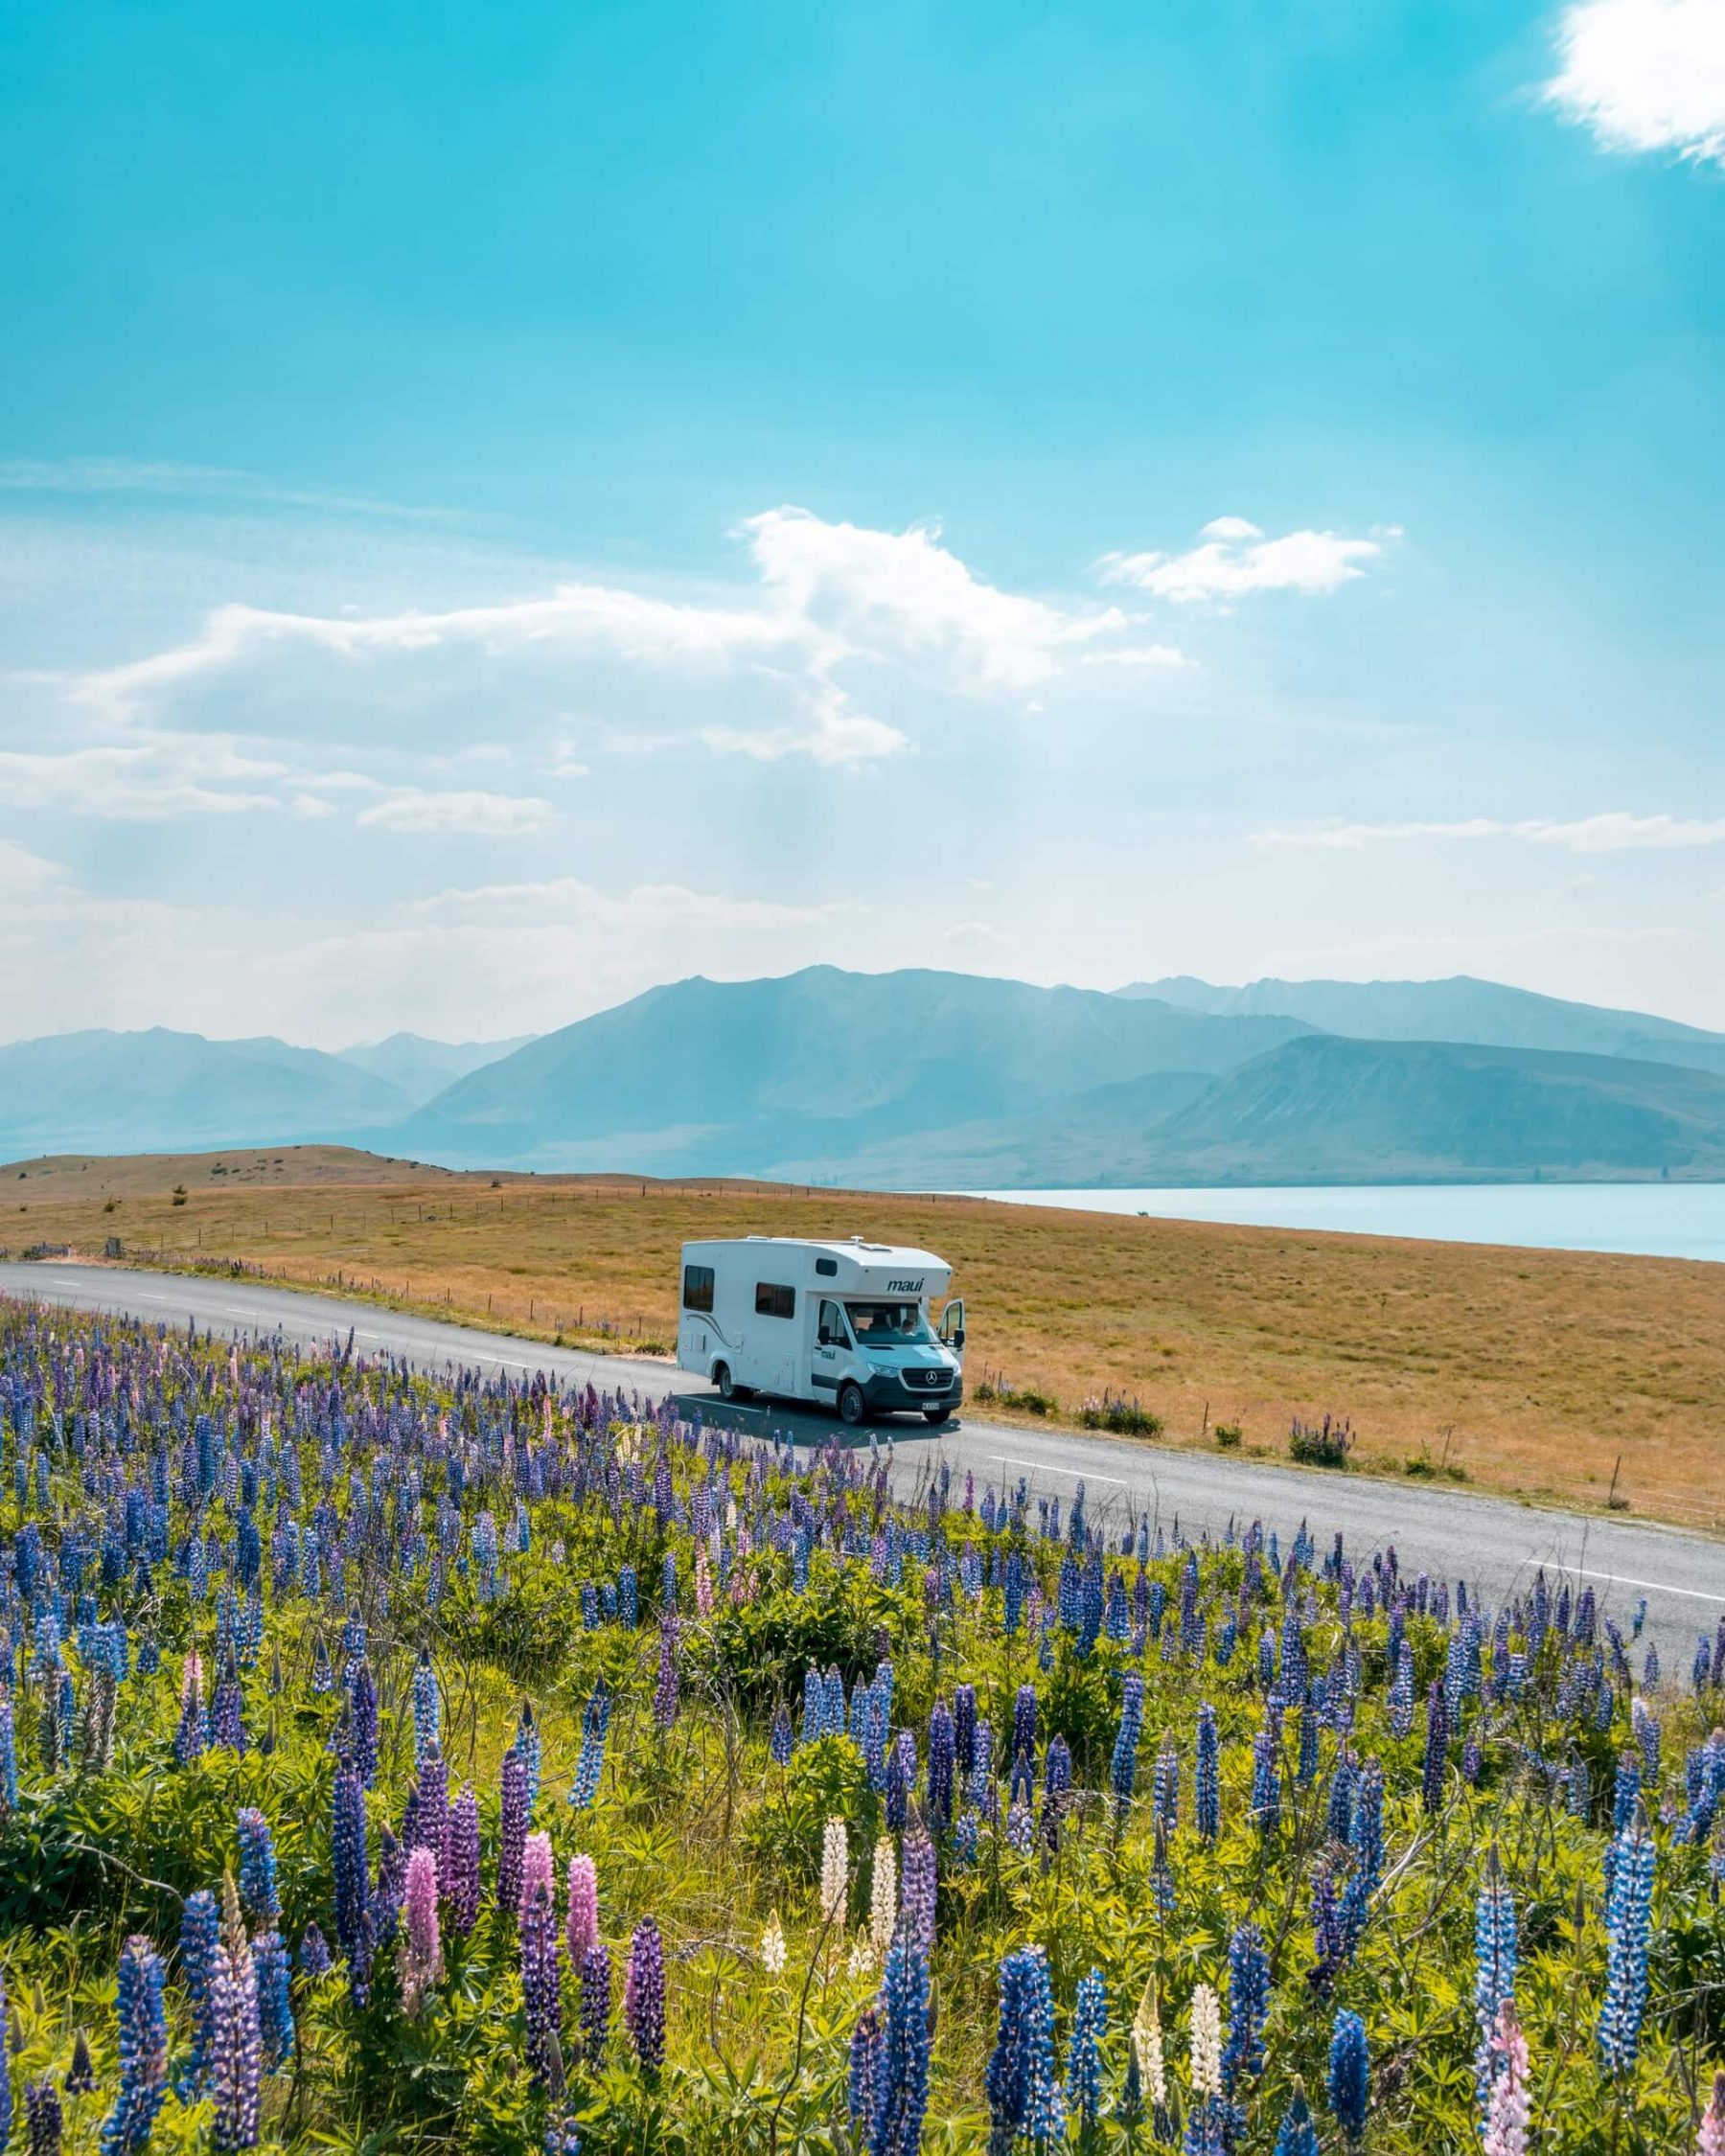 Family RV travels heats up again this summer as more people opt for roadtrips.